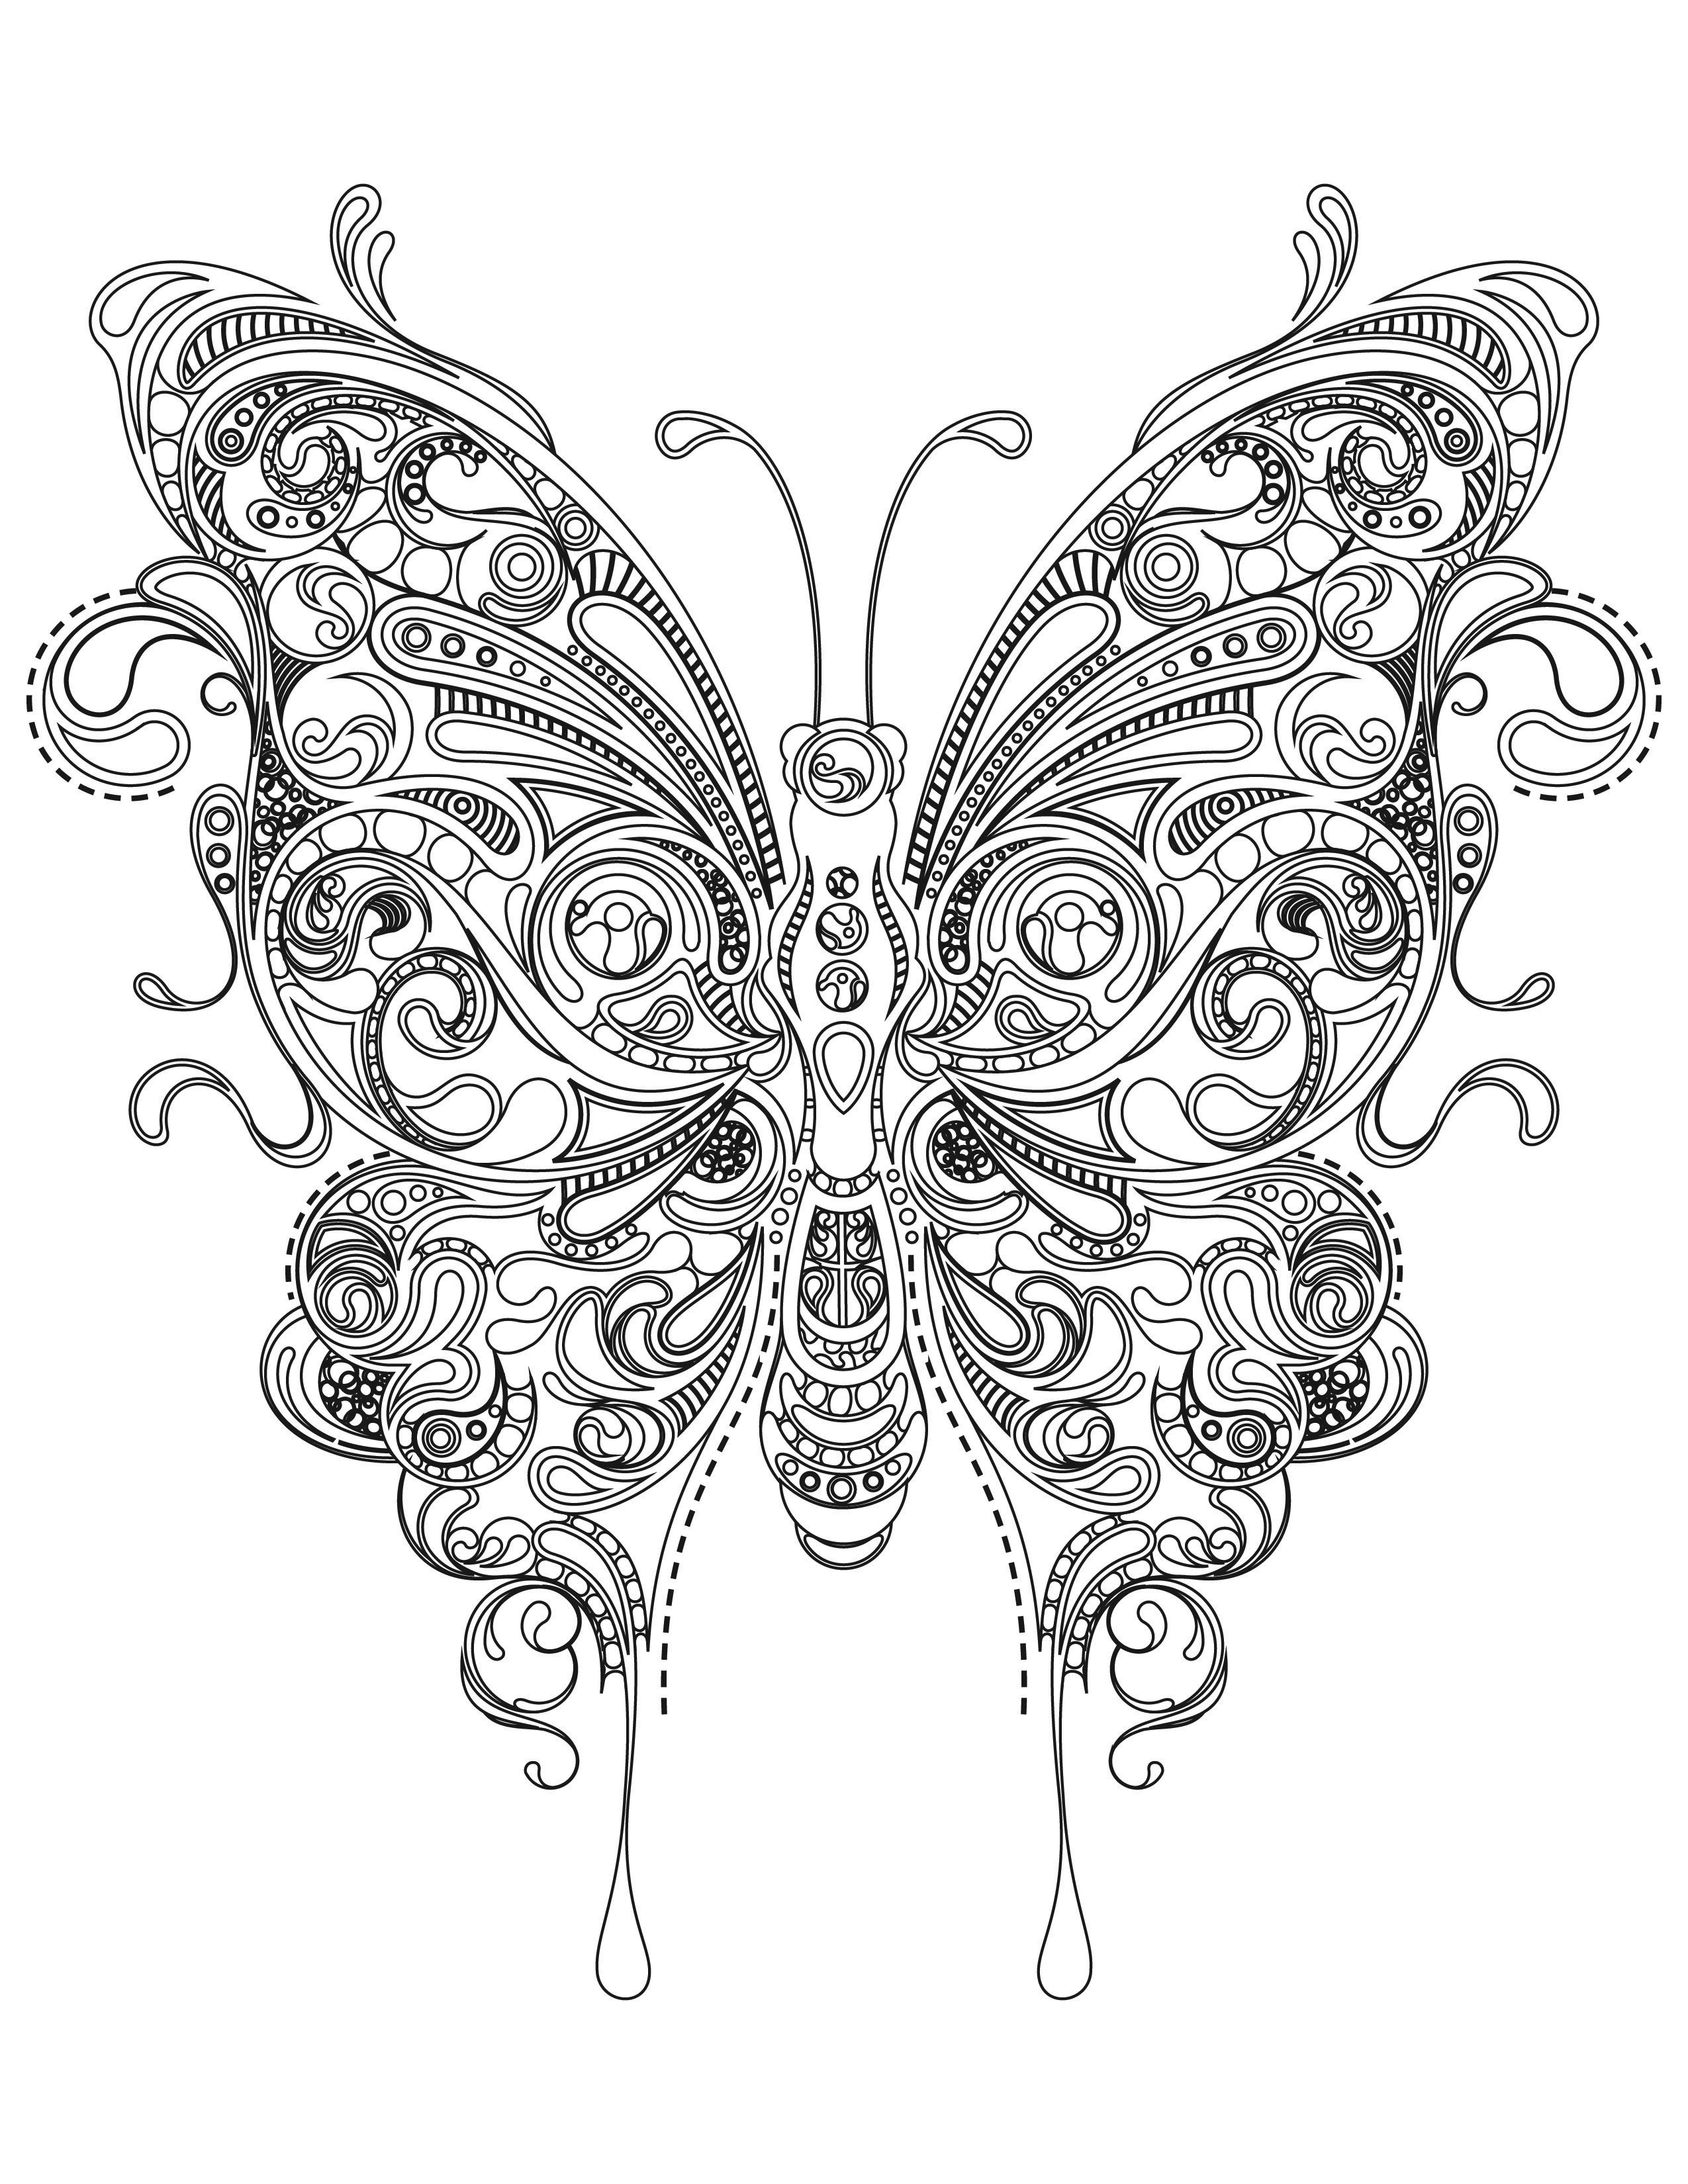 butterfly coloring pages free printable monarch butterfly coloring pages batman coloring pages printable pages free butterfly coloring